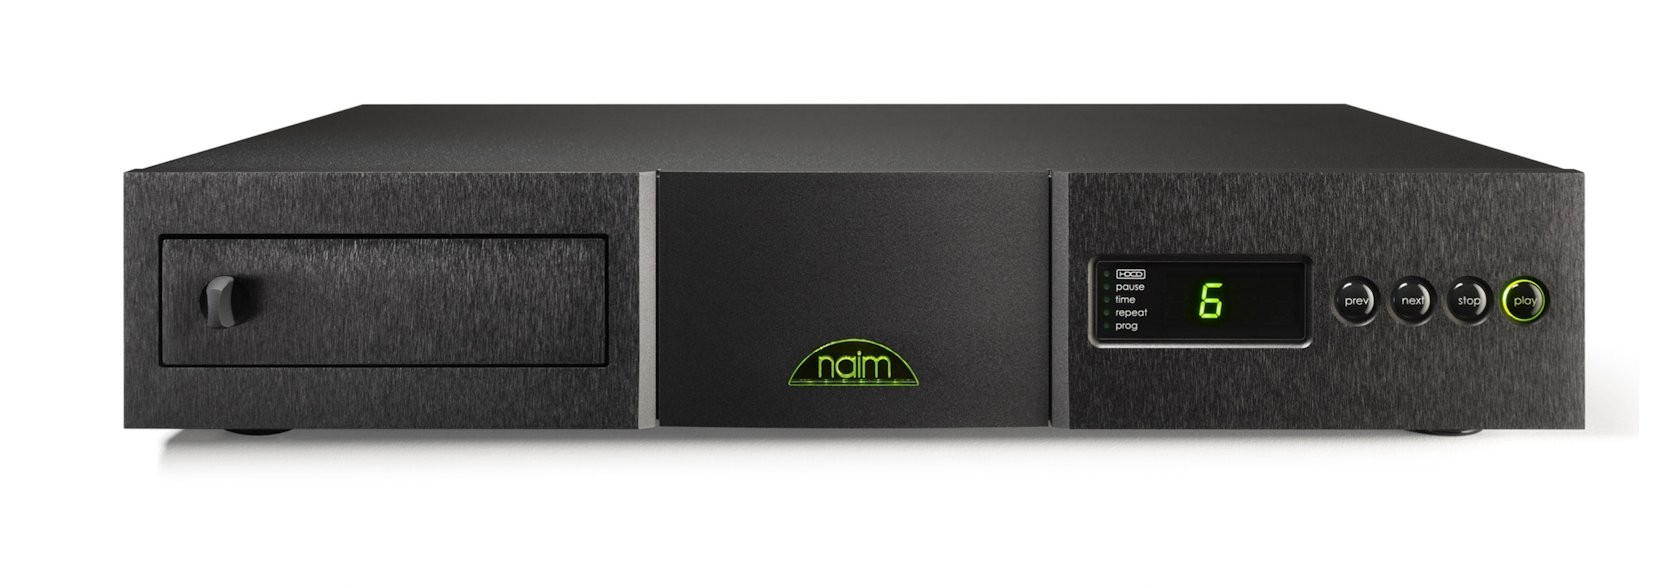 Naim Audio CDX2